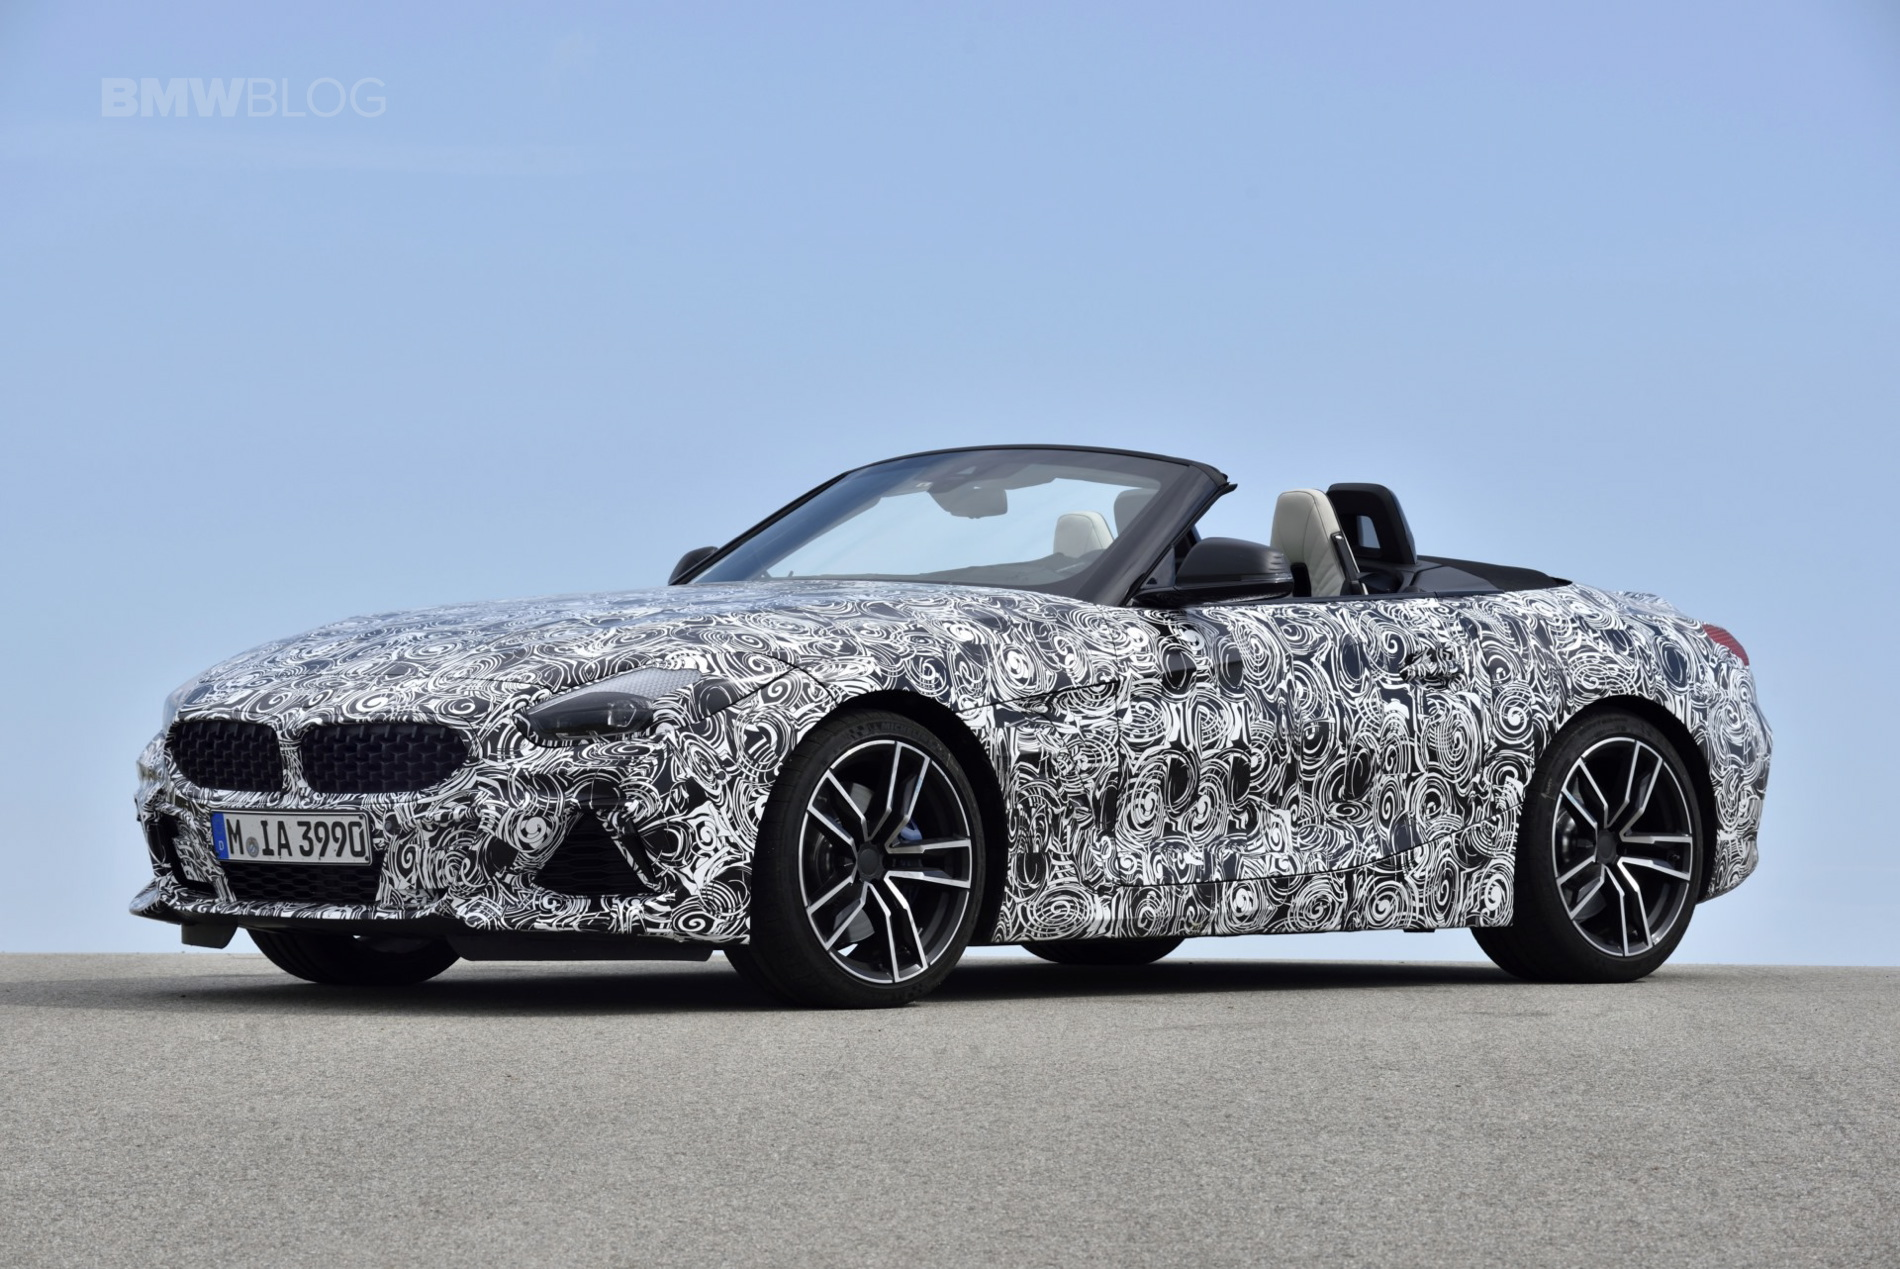 New 2020 Bmw Z4 M40i To Be Priced Mid To High 60k